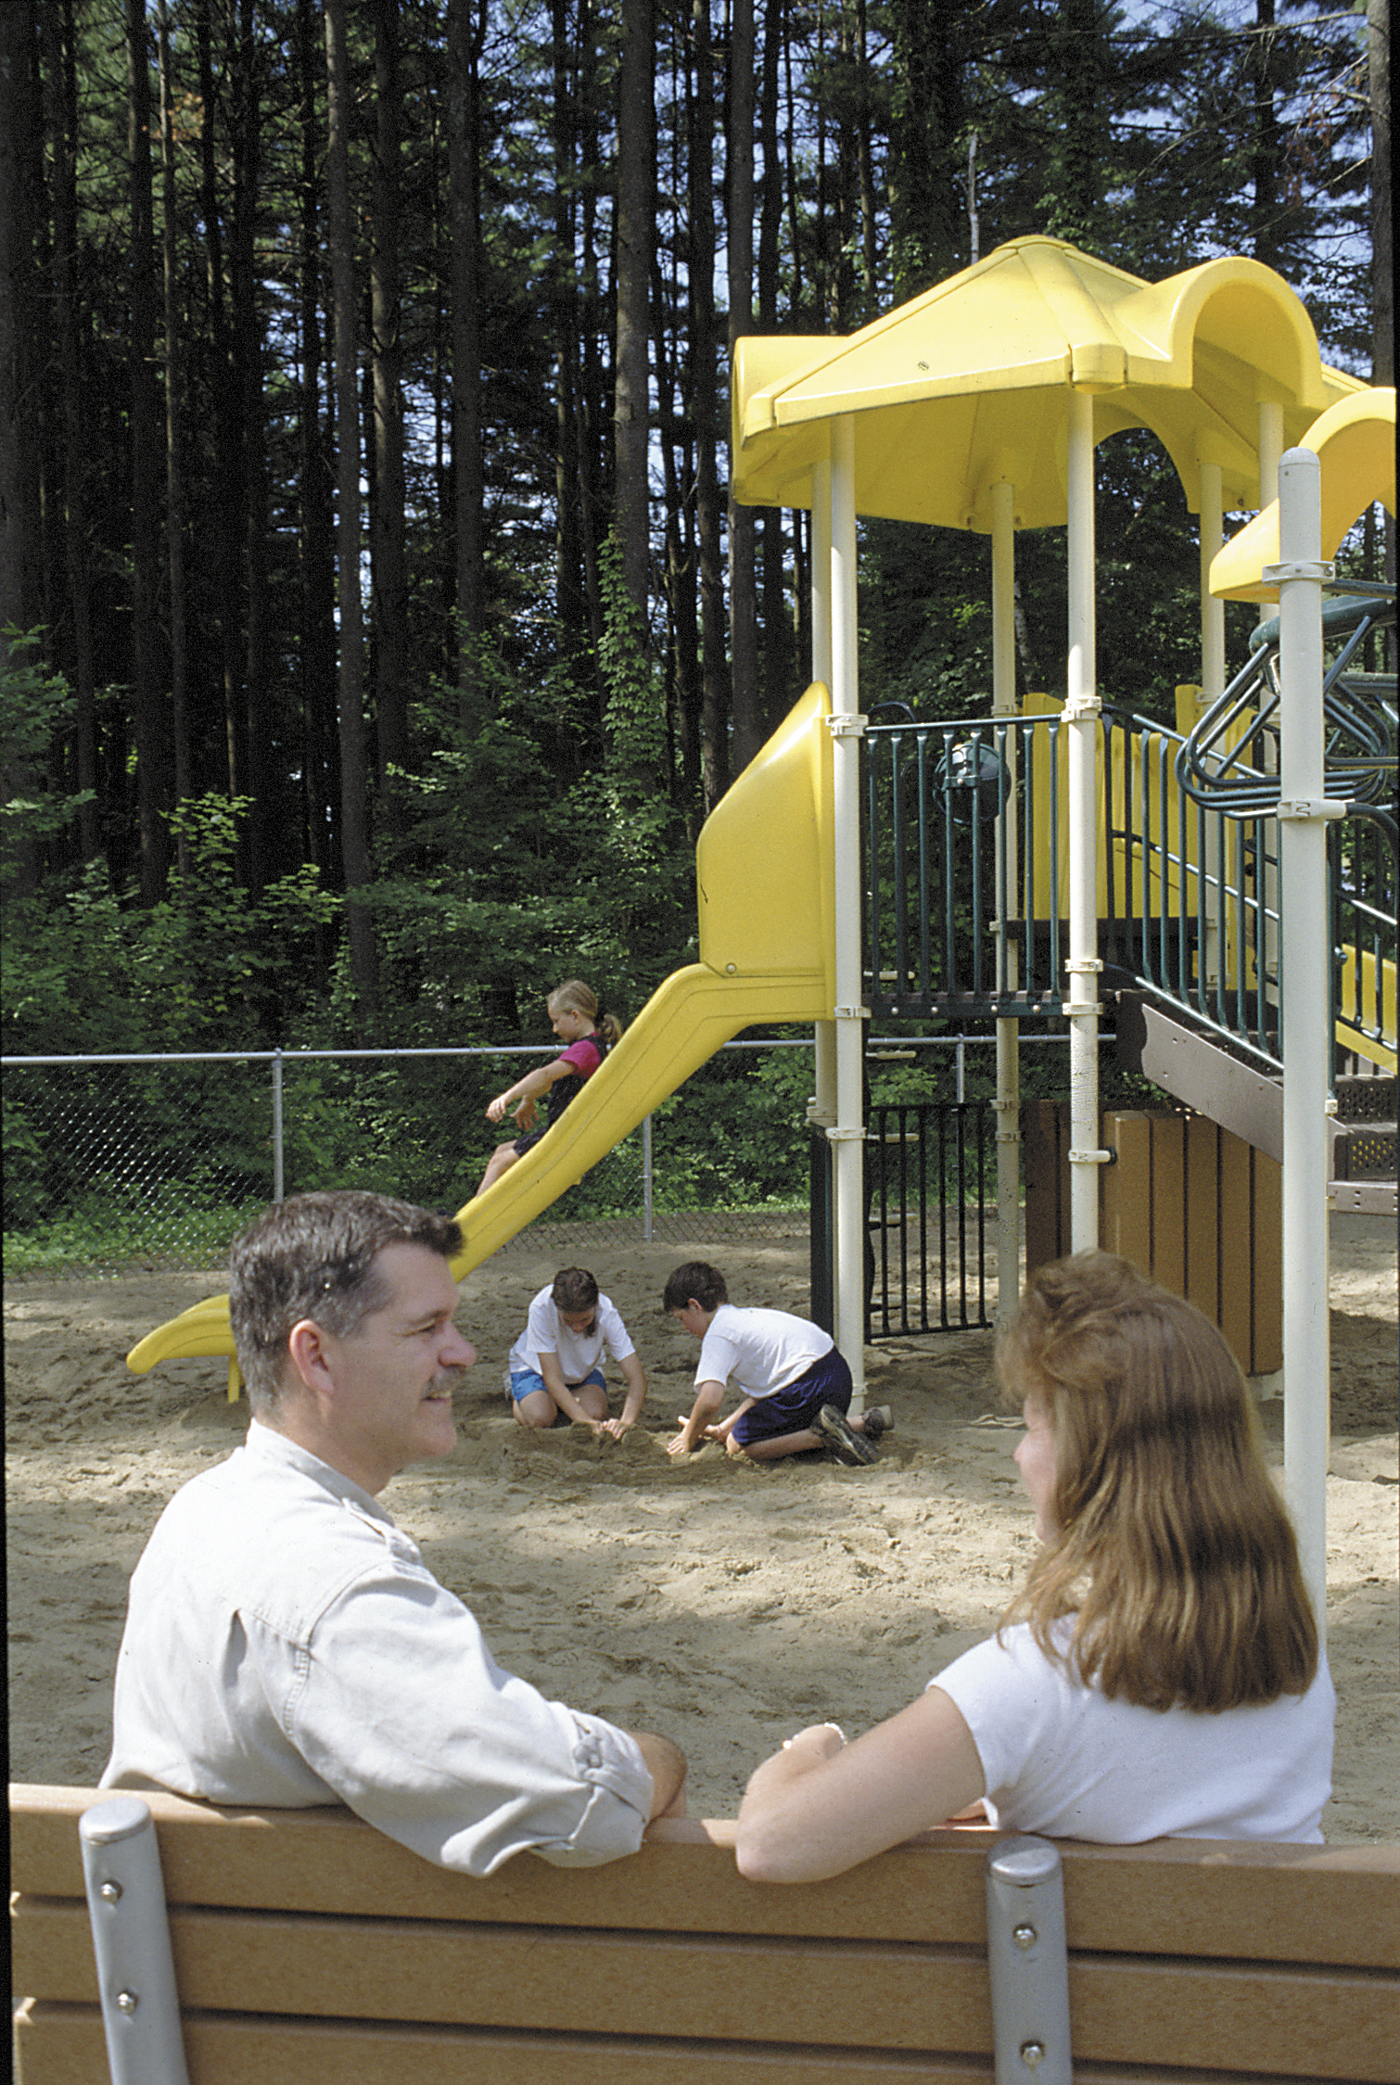 West end playground located behind west outdoor pool